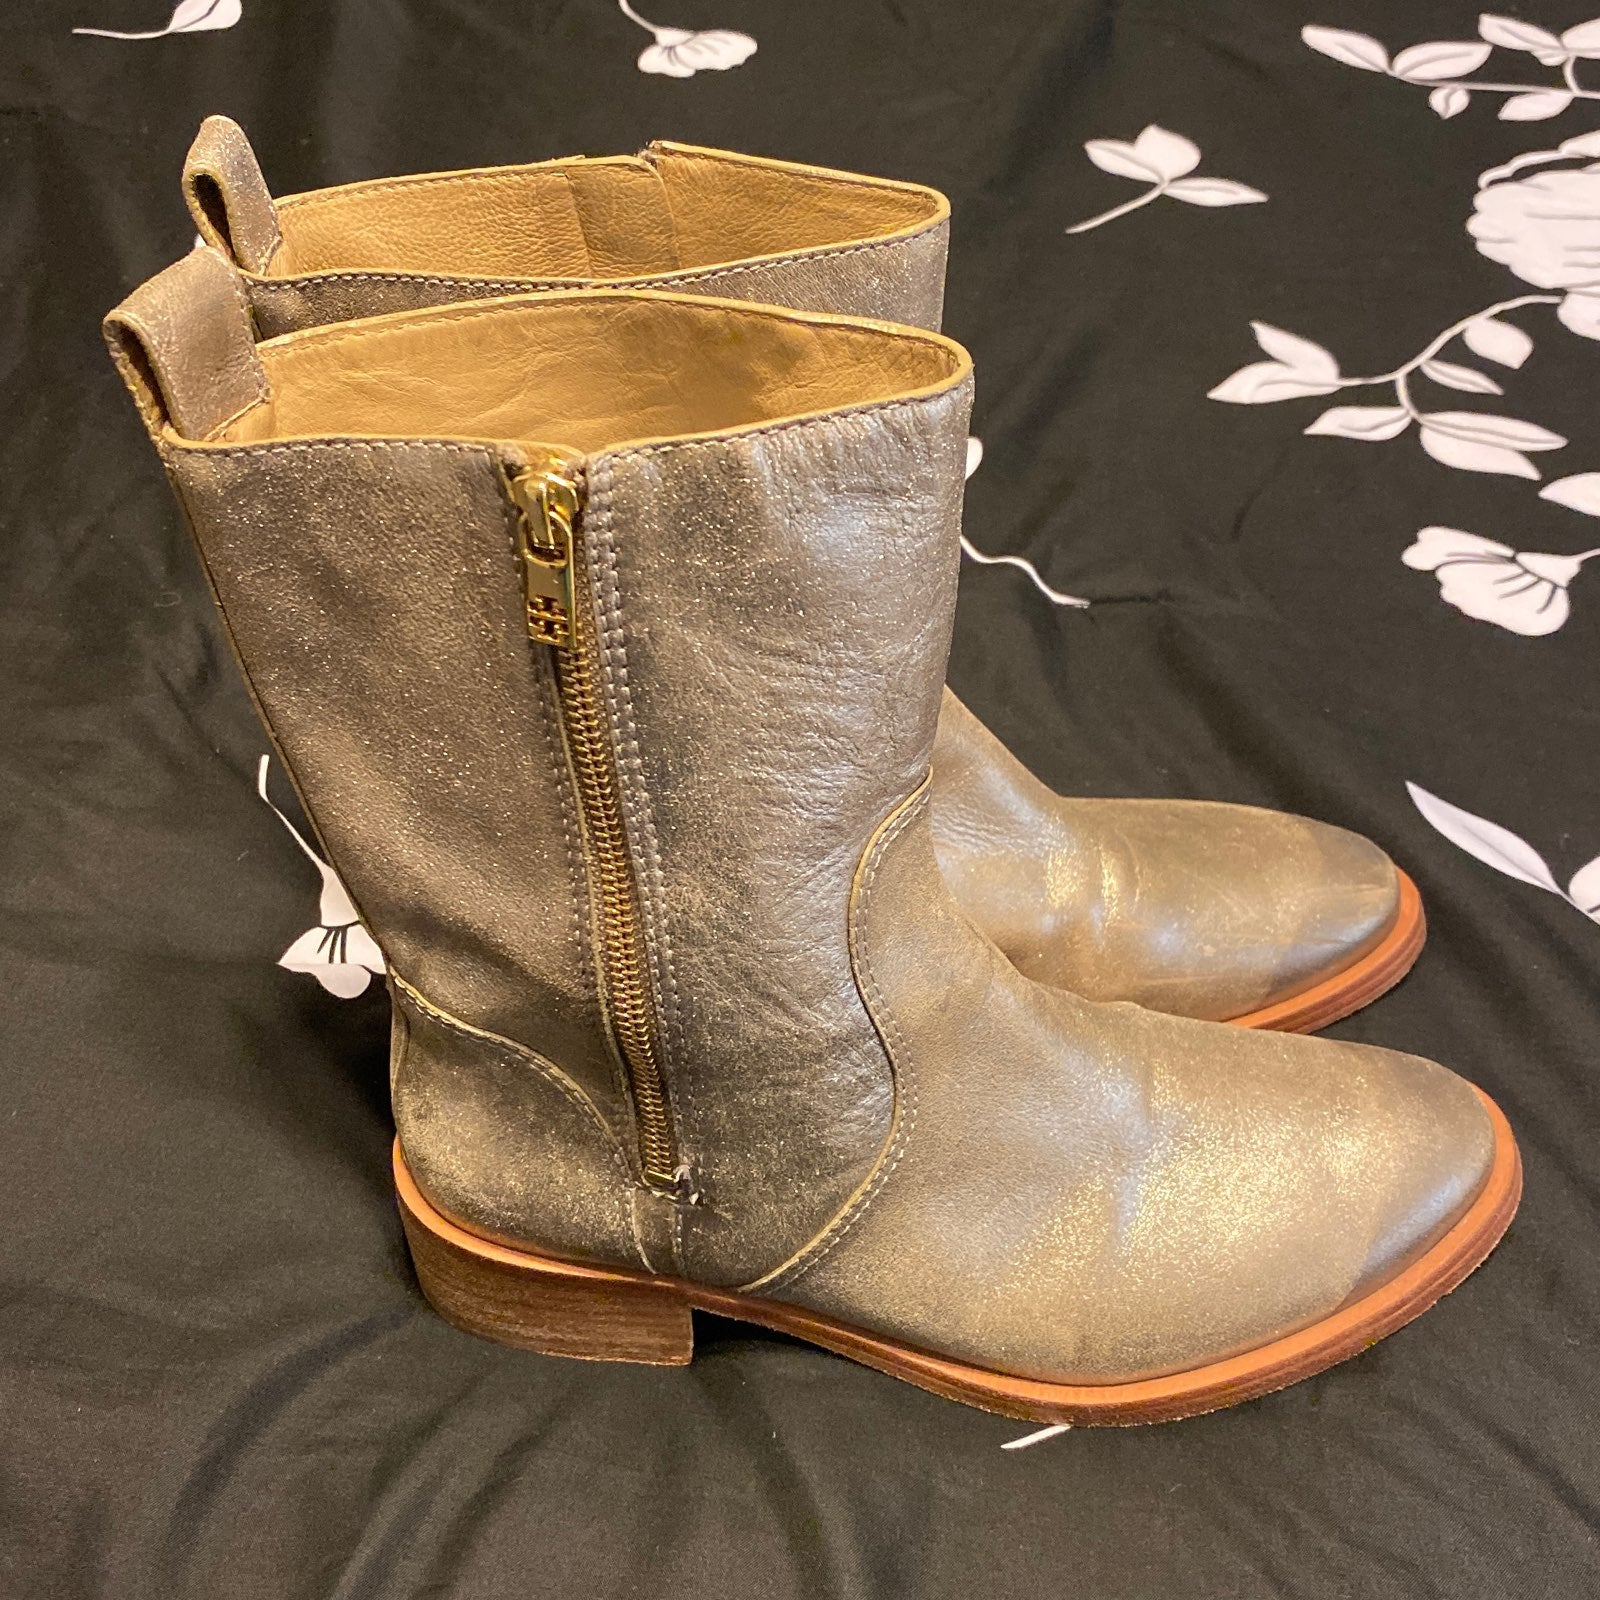 tory burch Boots size 8.5